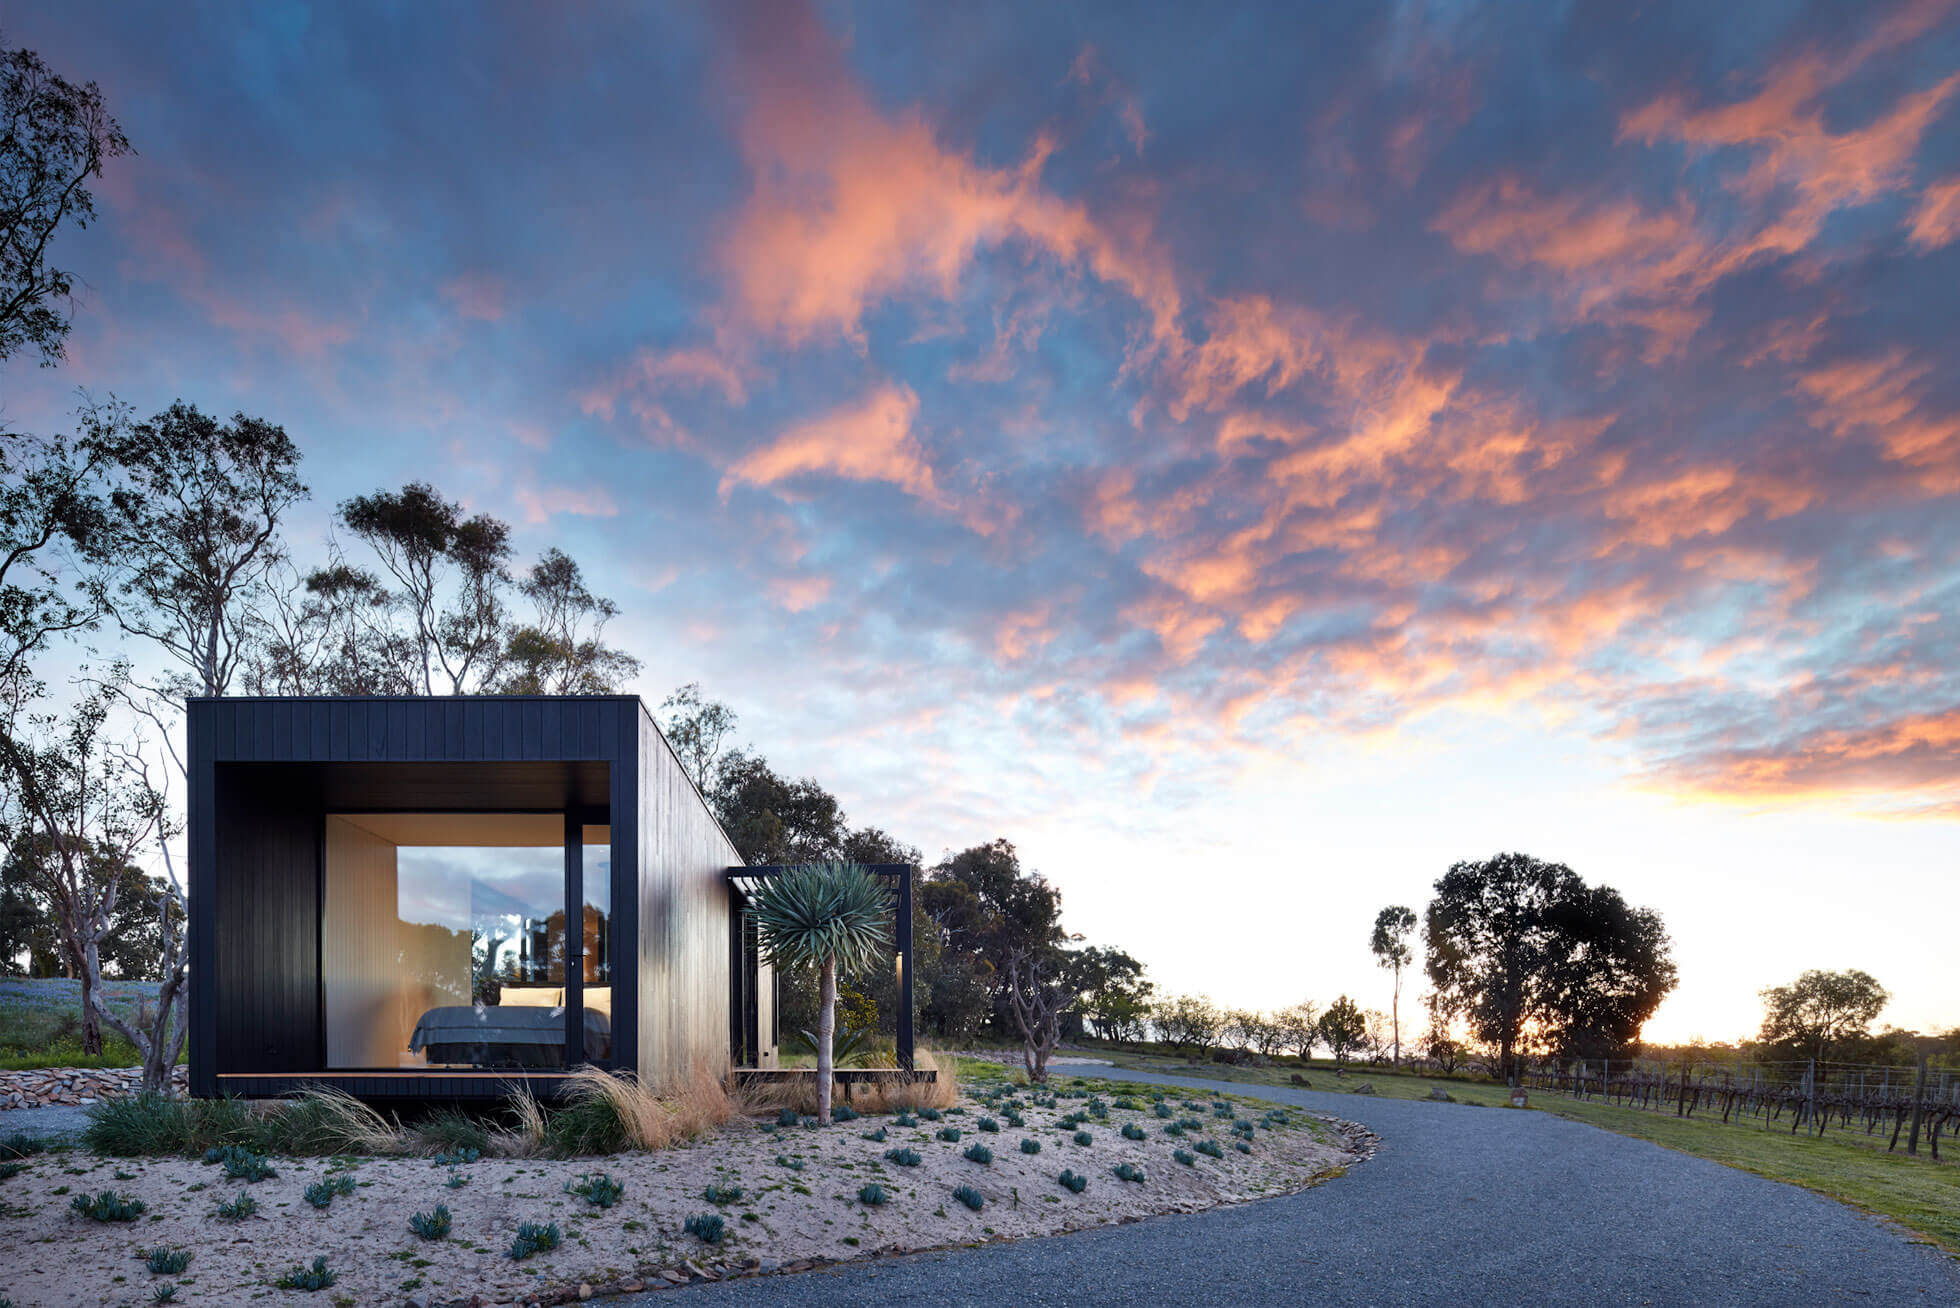 Sunset views Cadole Avalon, The Vineyard McLaren Vale